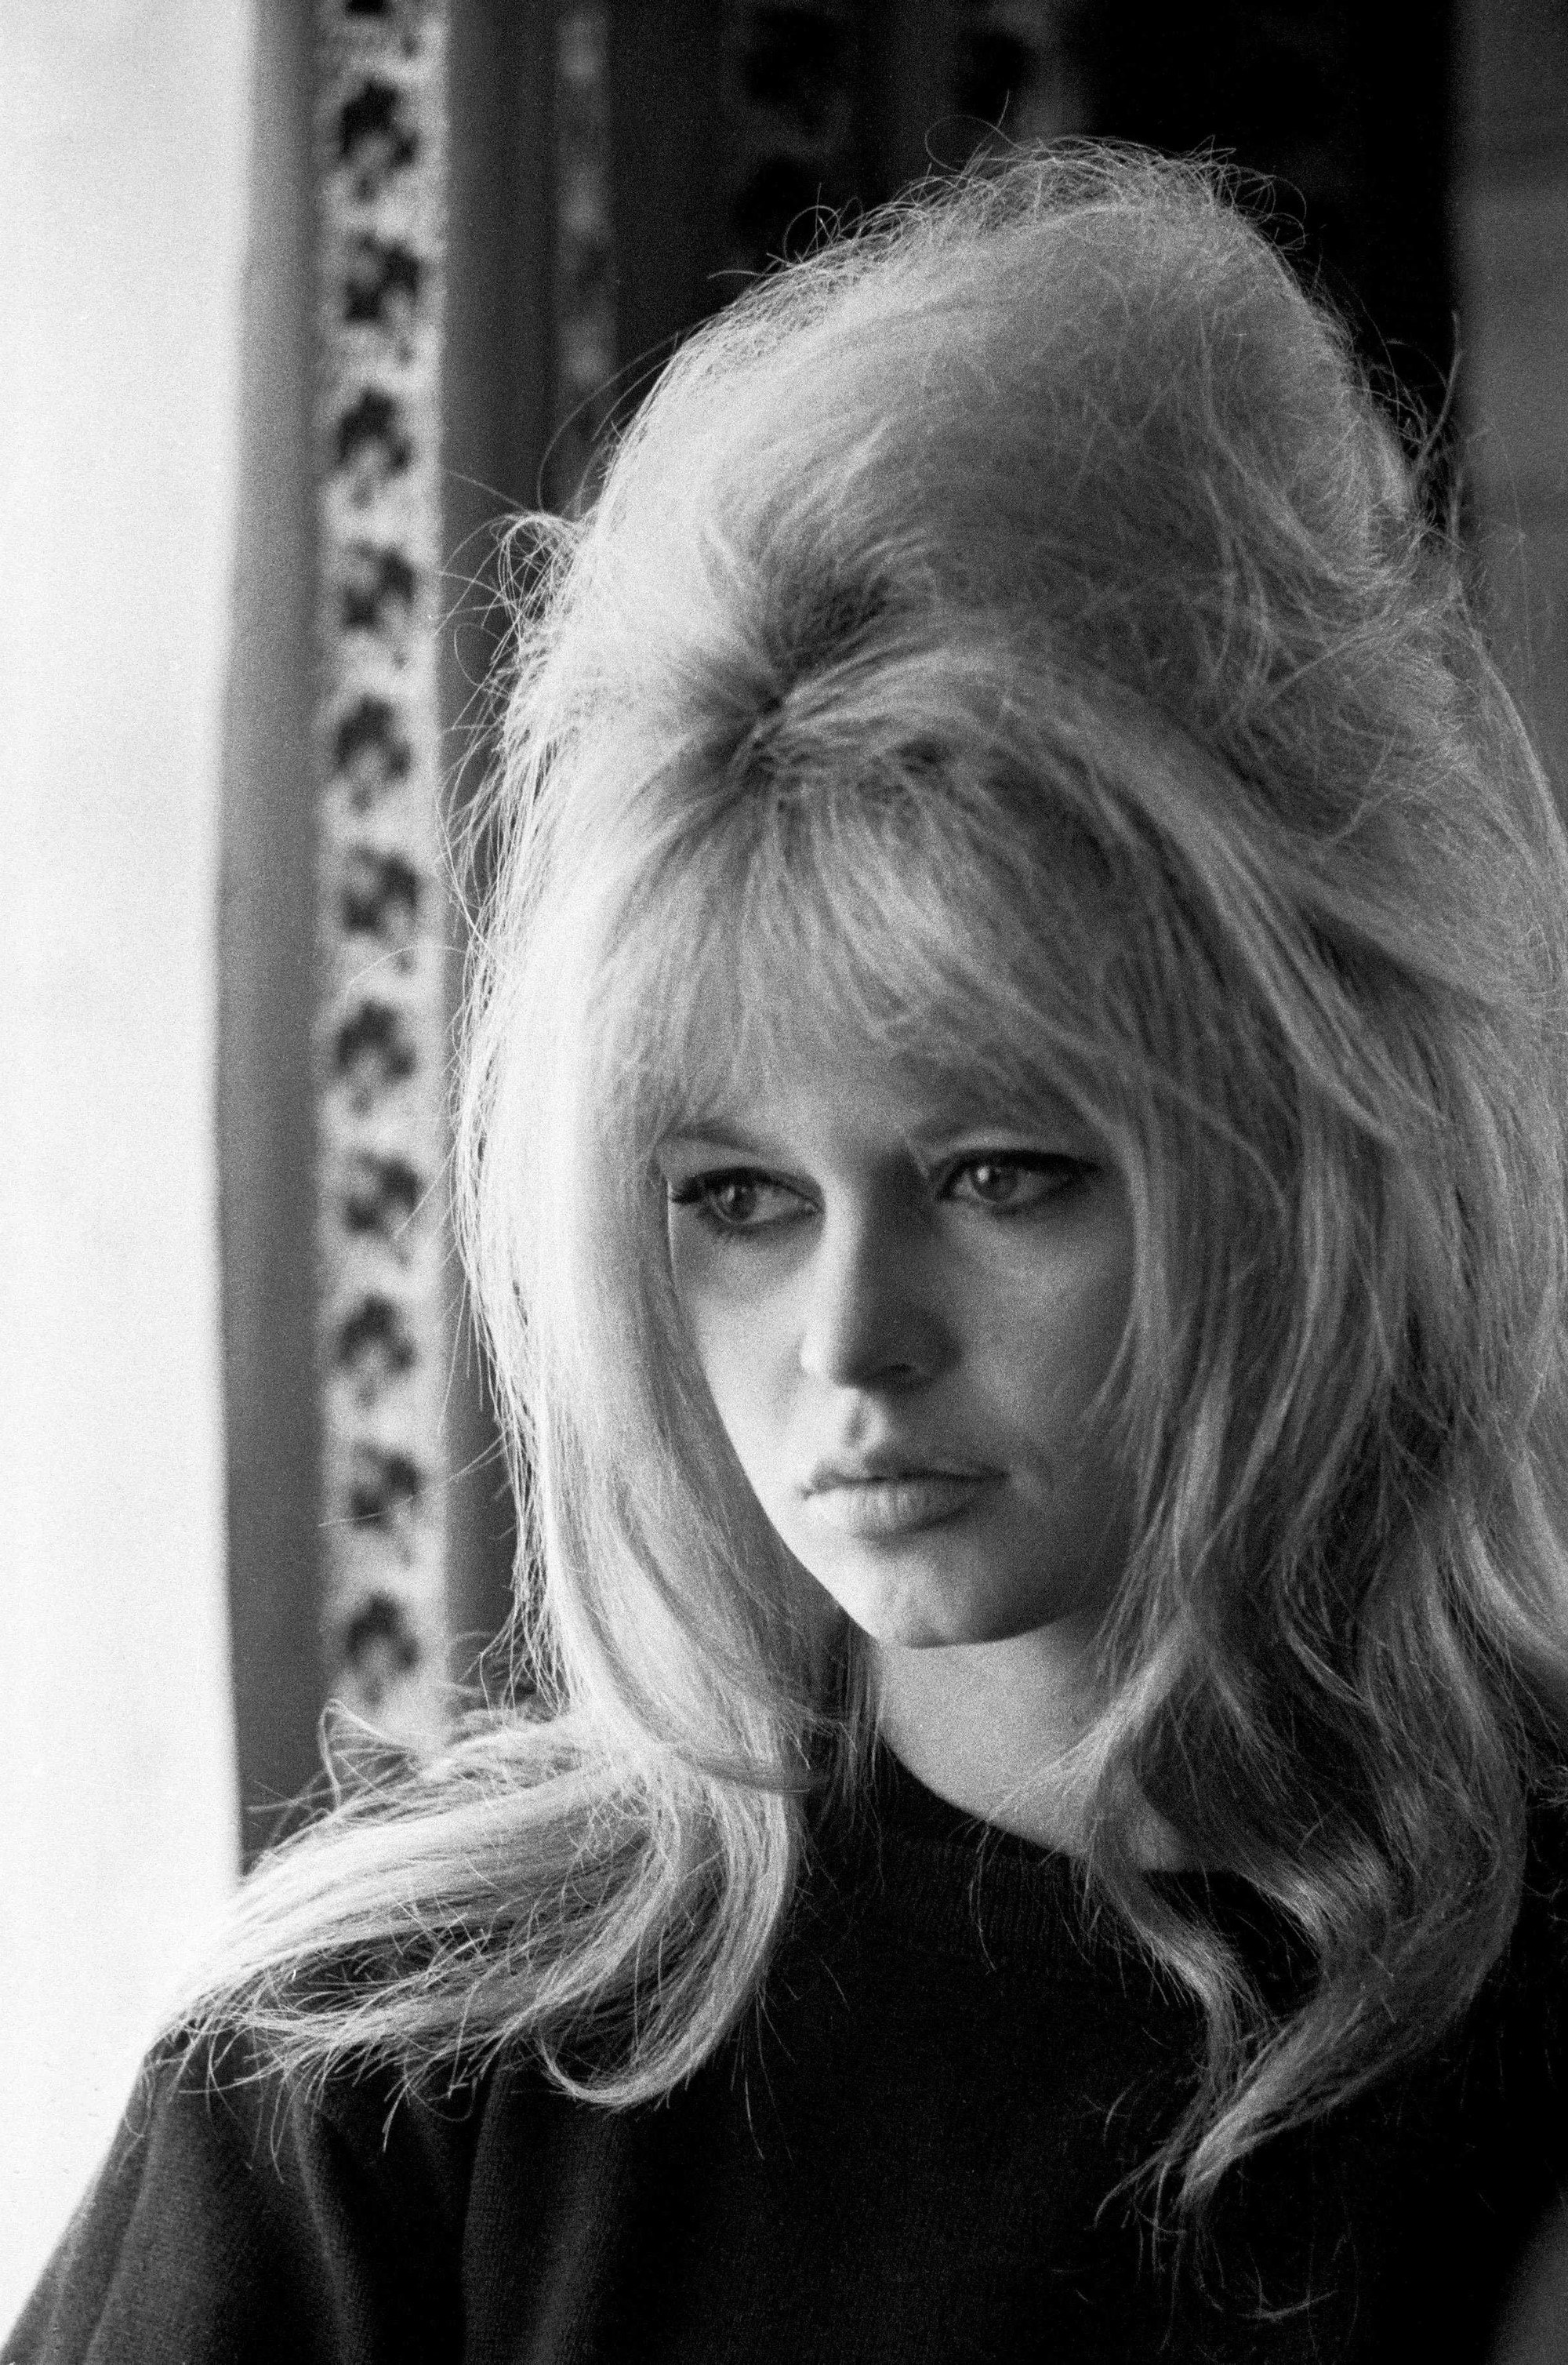 french 60s actress brigitte bardot with her blonde hair in a beehive